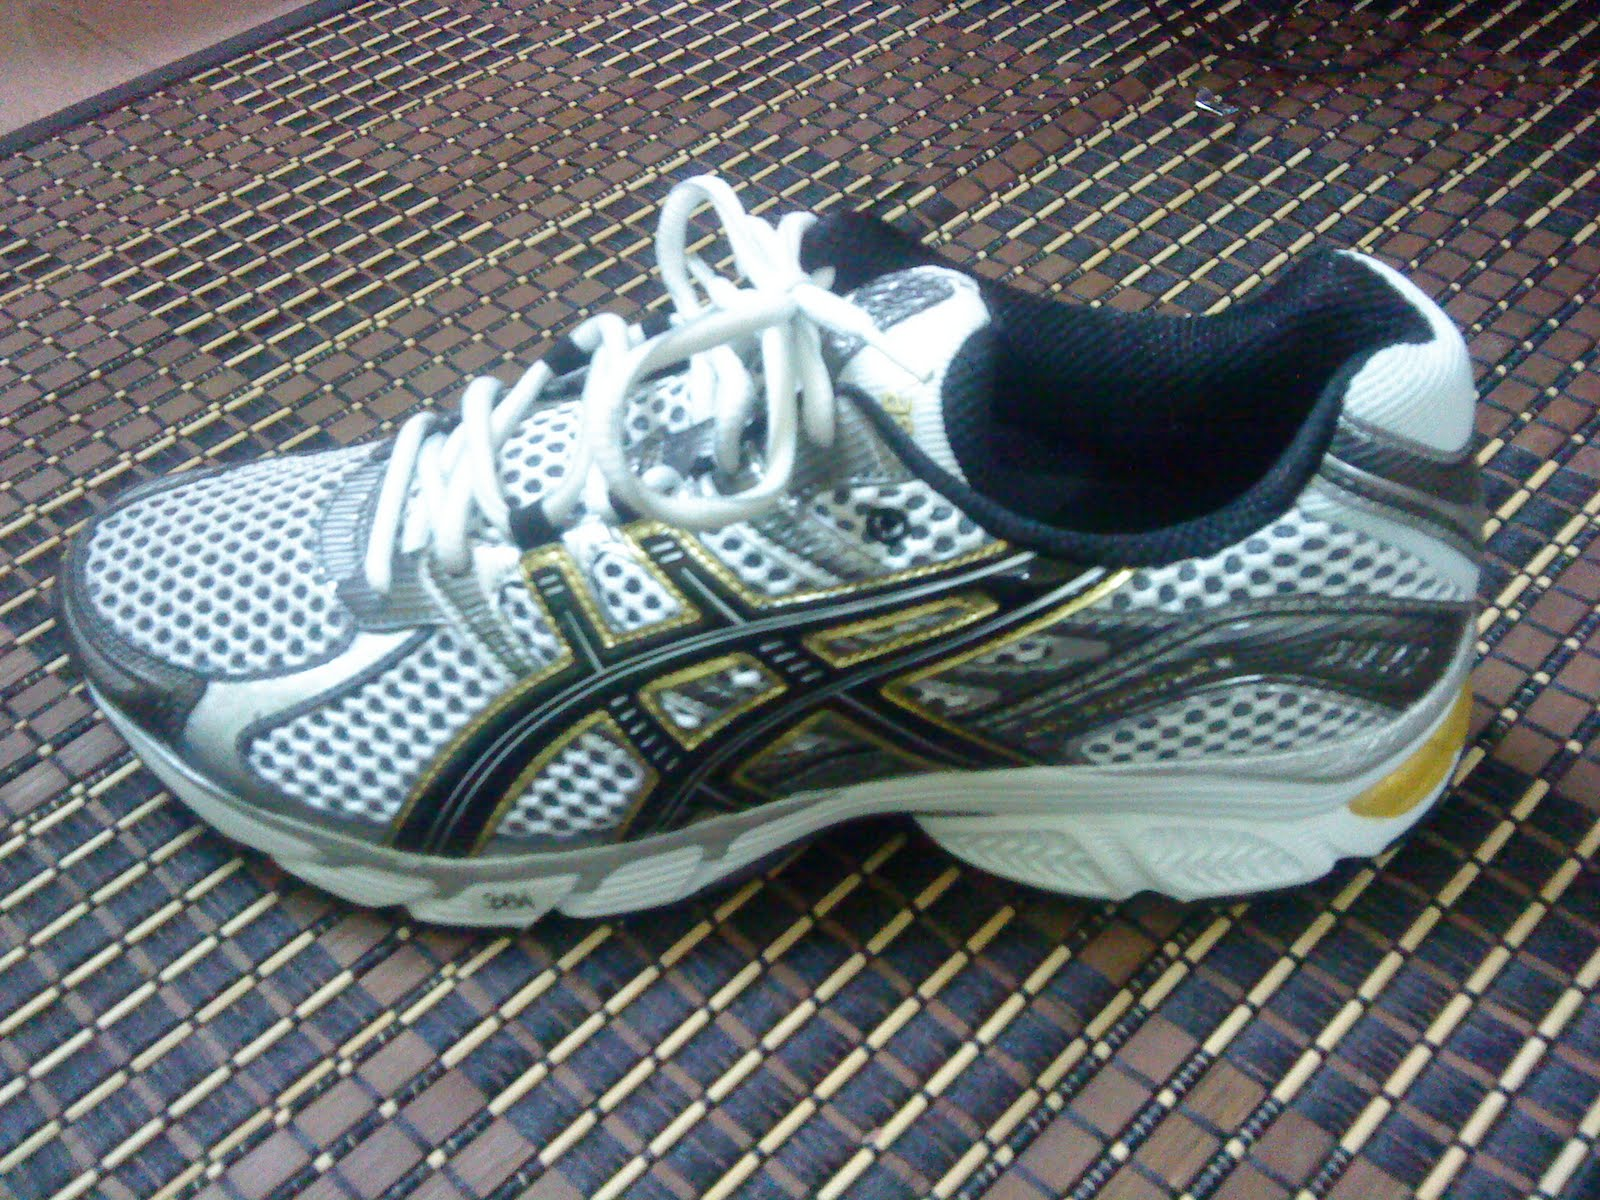 f06d374be2 My Asics Gel Kanbarra still in good condition. Haven t done much running  tbh. Awesome running shoe though.